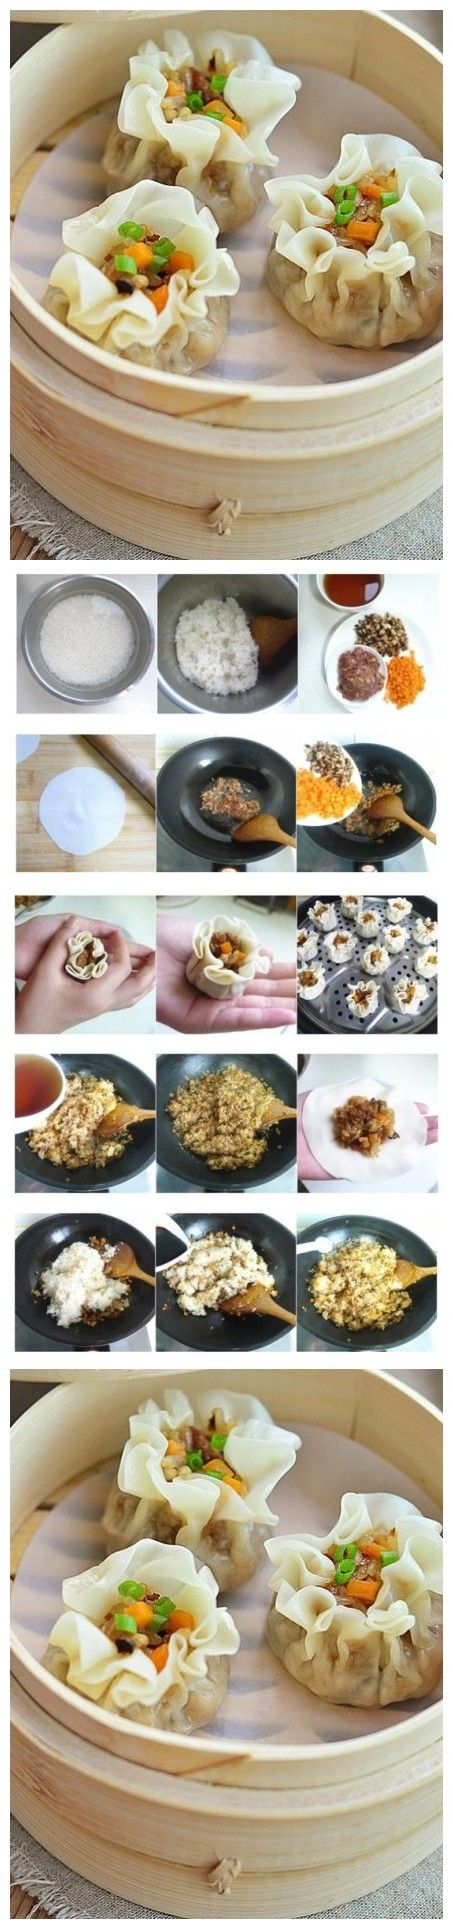 Chinese Steamed Rice Dumplings. Glutinous rice mixed with cooked meat mince, dry mushroom and carrot cubes